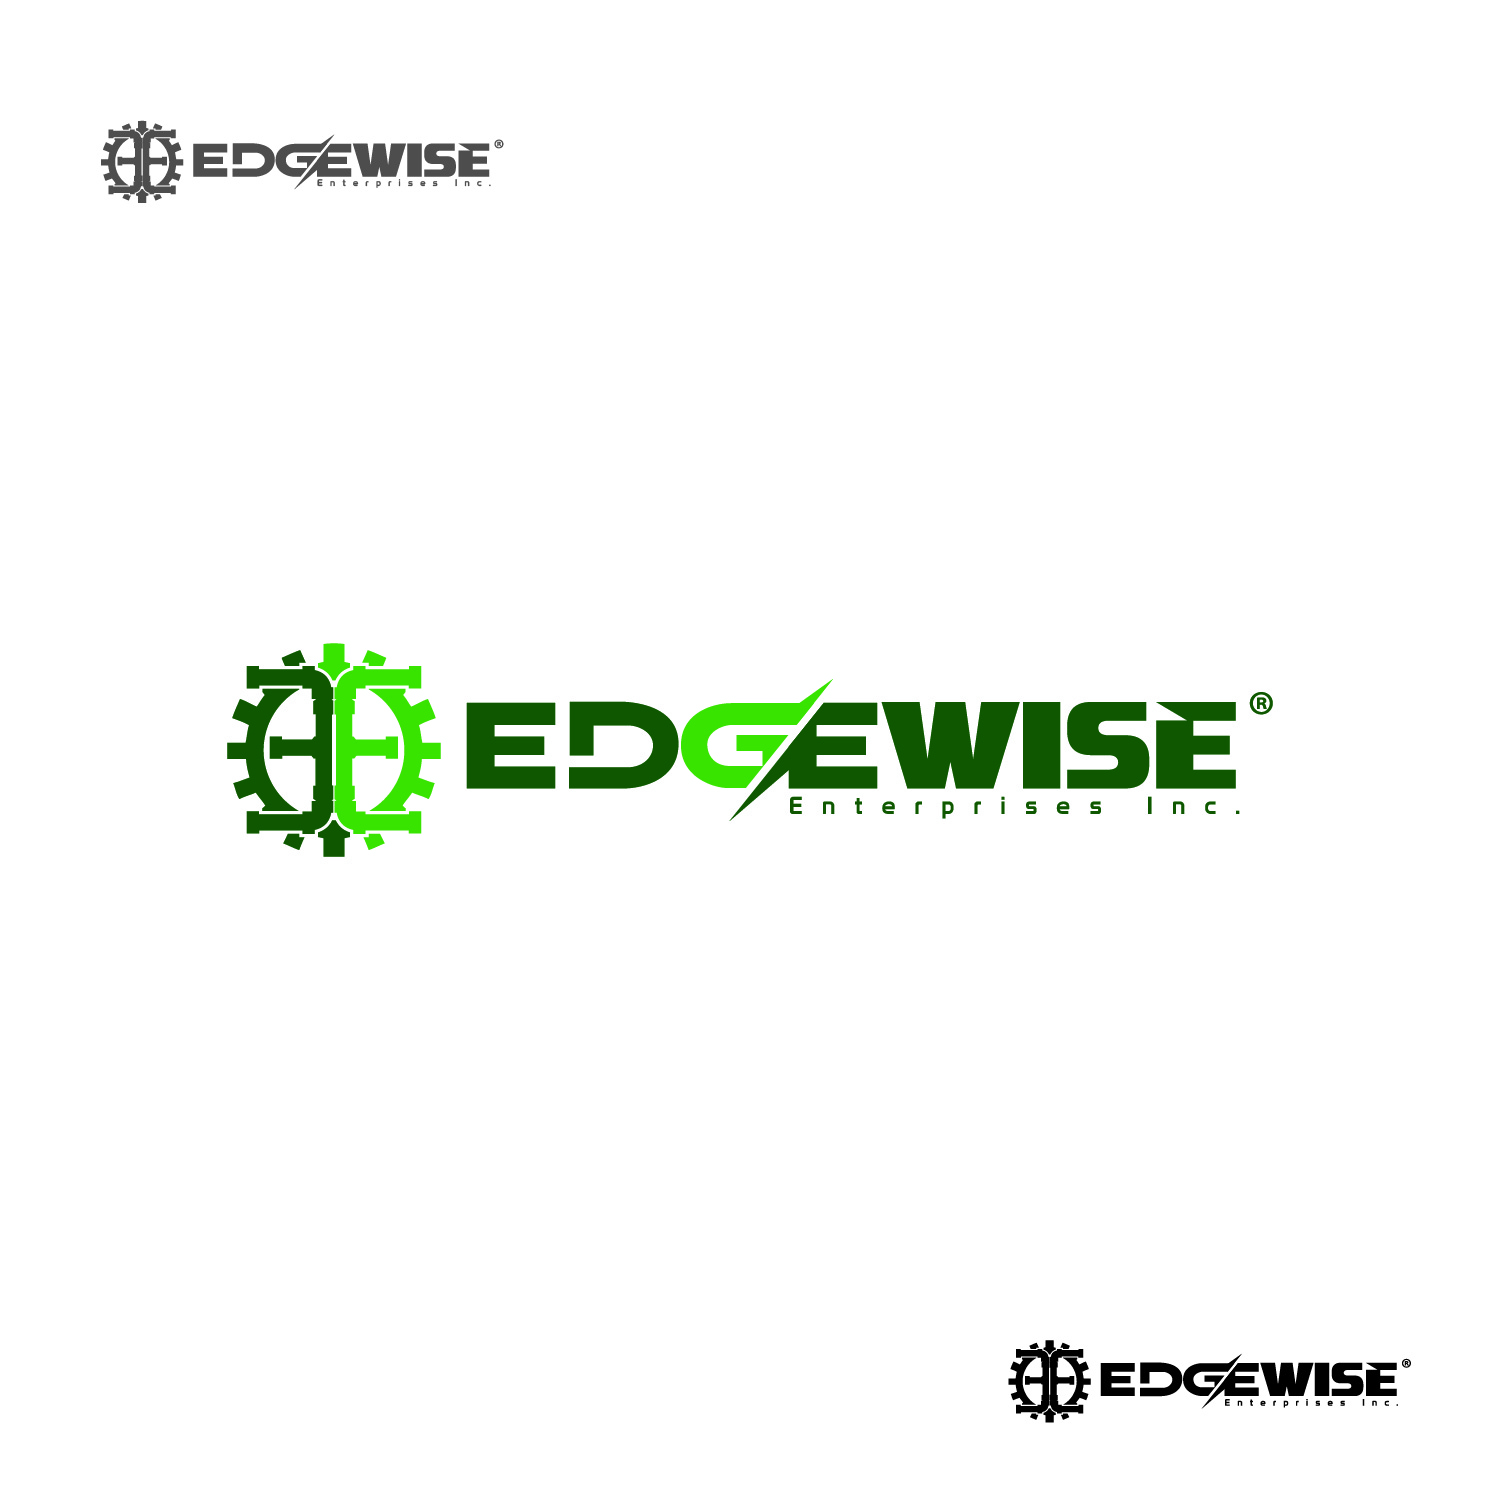 Logo Design by lagalag - Entry No. 74 in the Logo Design Contest New Logo Design for Edgewise Enterprises Inc..